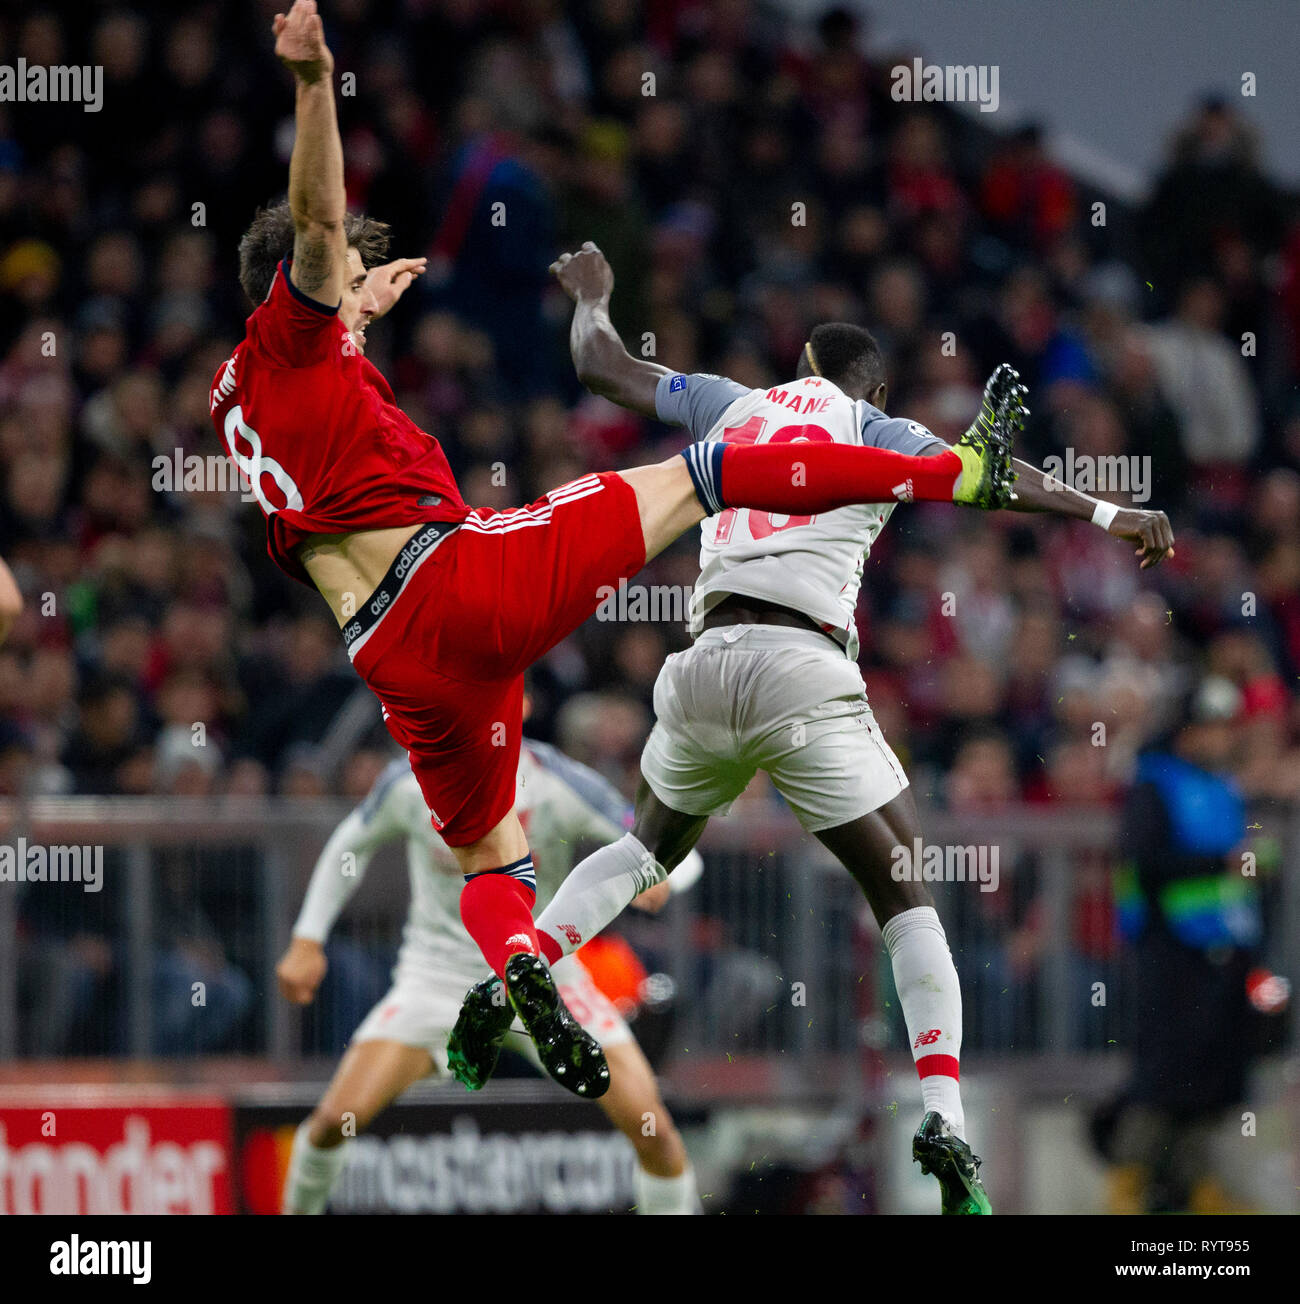 Uefa Champions League Round Of: Liverpool 2018 Stock Photos & Liverpool 2018 Stock Images